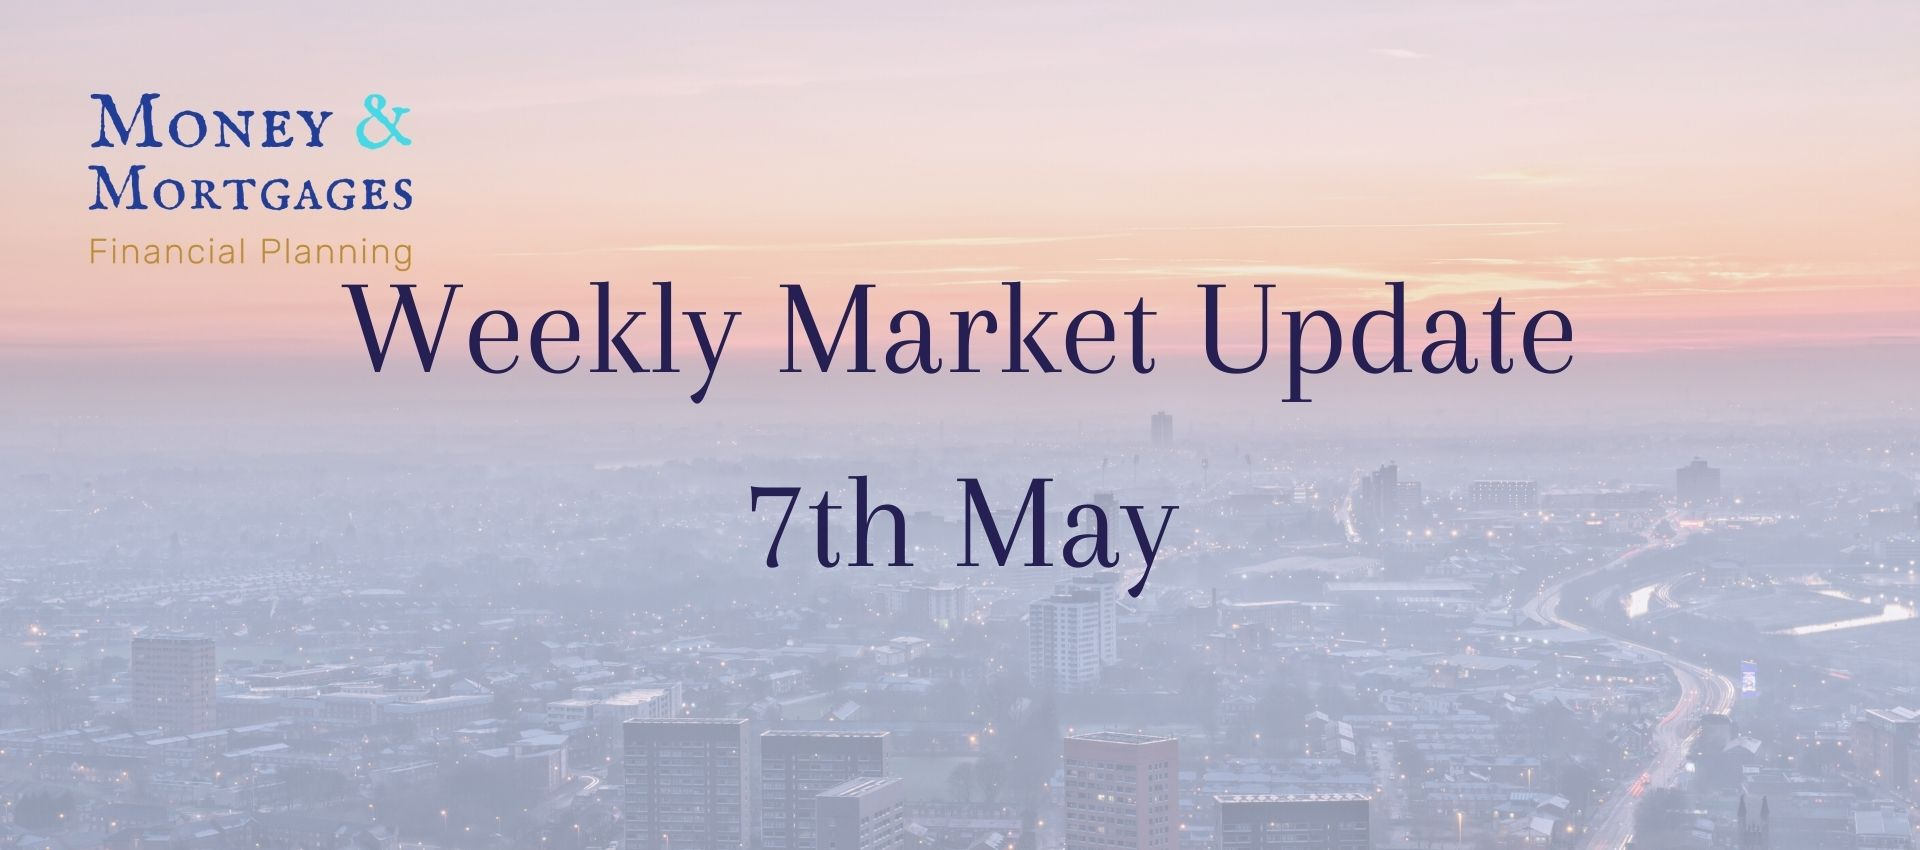 7th May stock market update